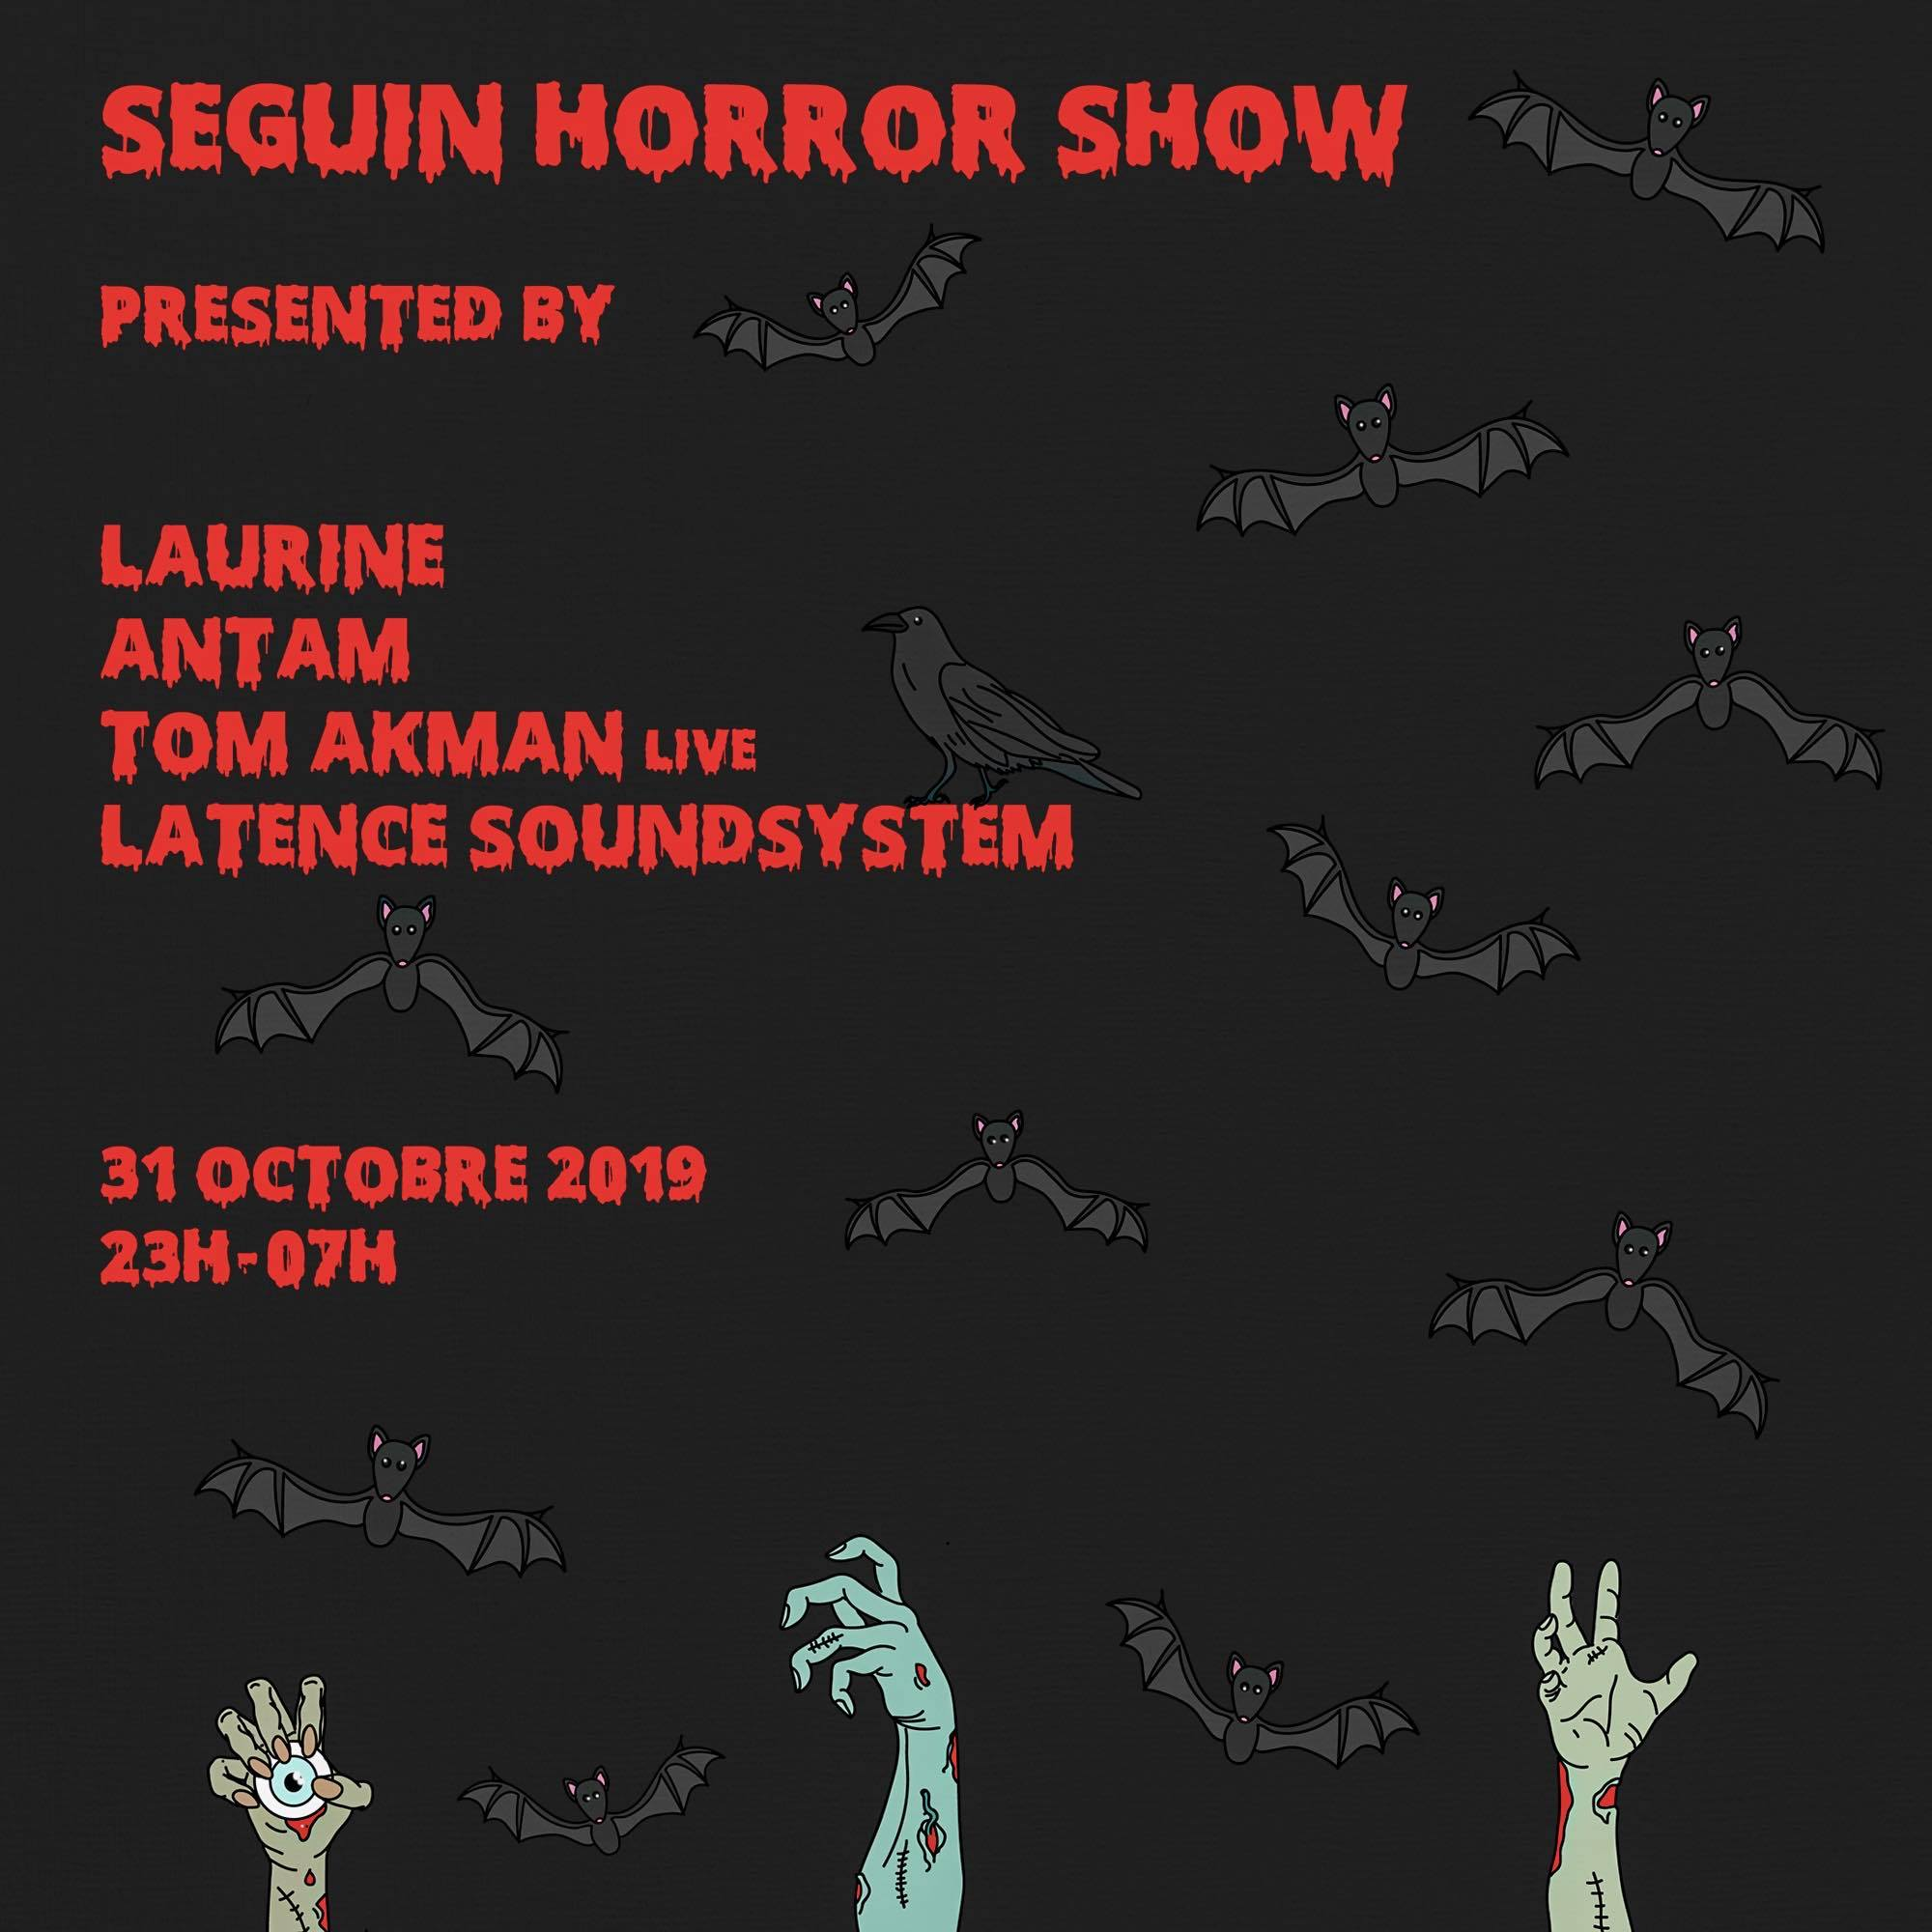 Horror Show : Laurine, Antam, Tom Akman (live) by Latence